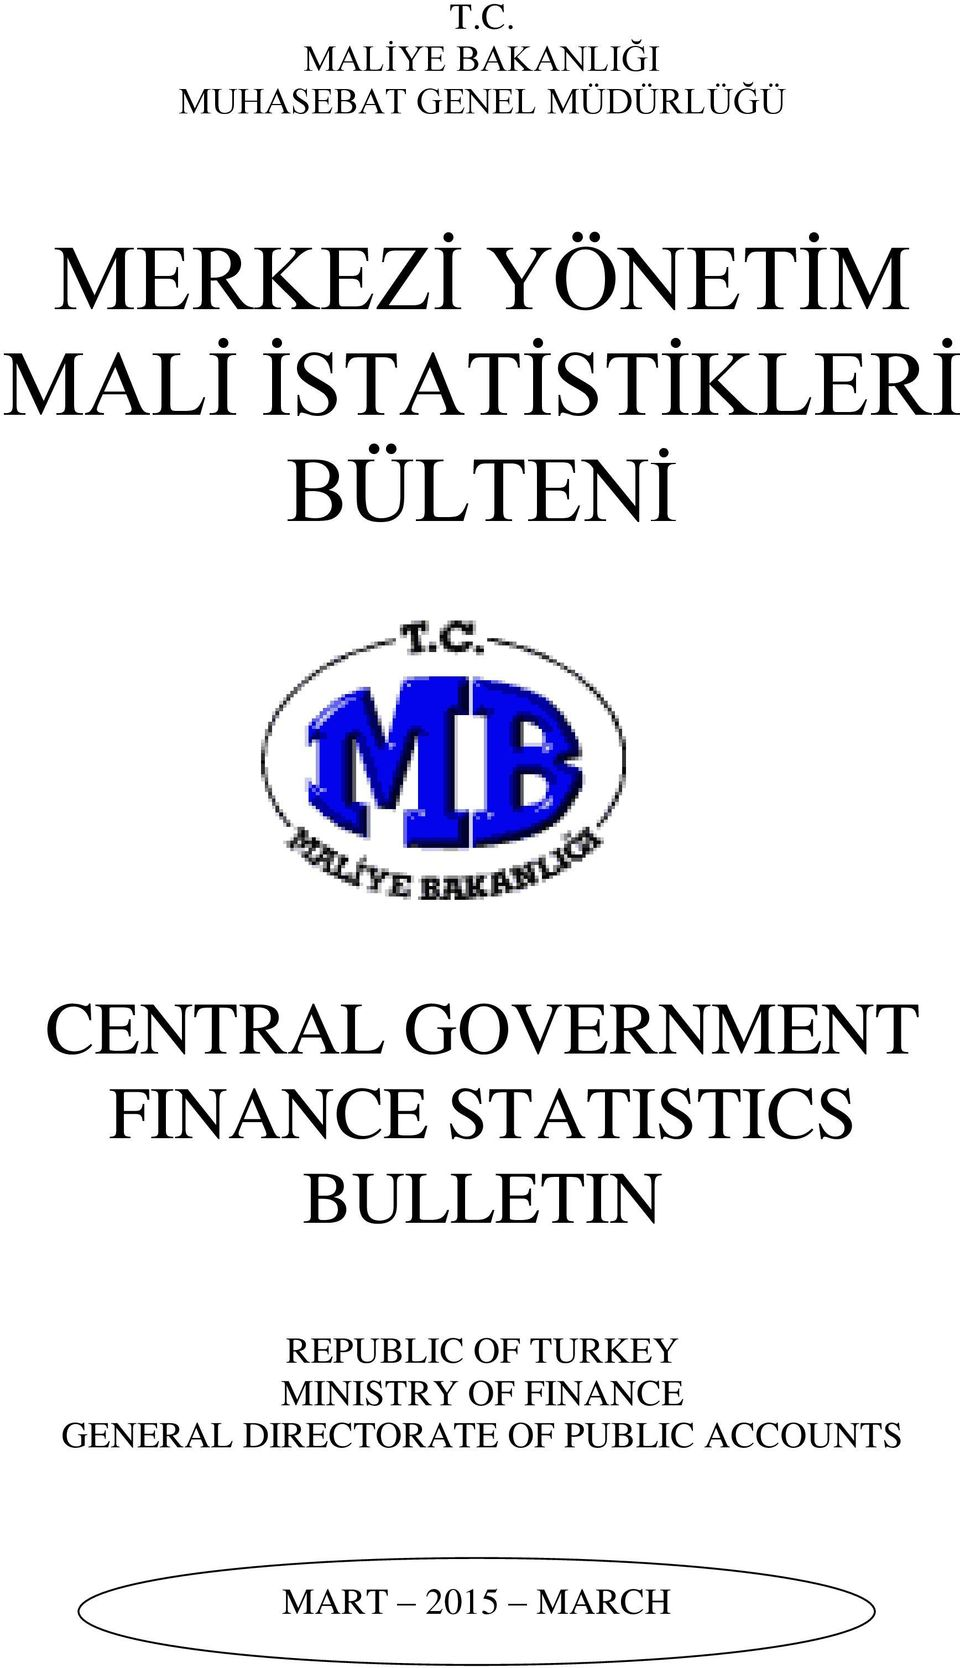 FINANCE STATISTICS BULLETIN REPUBLIC OF TURKEY MINISTRY